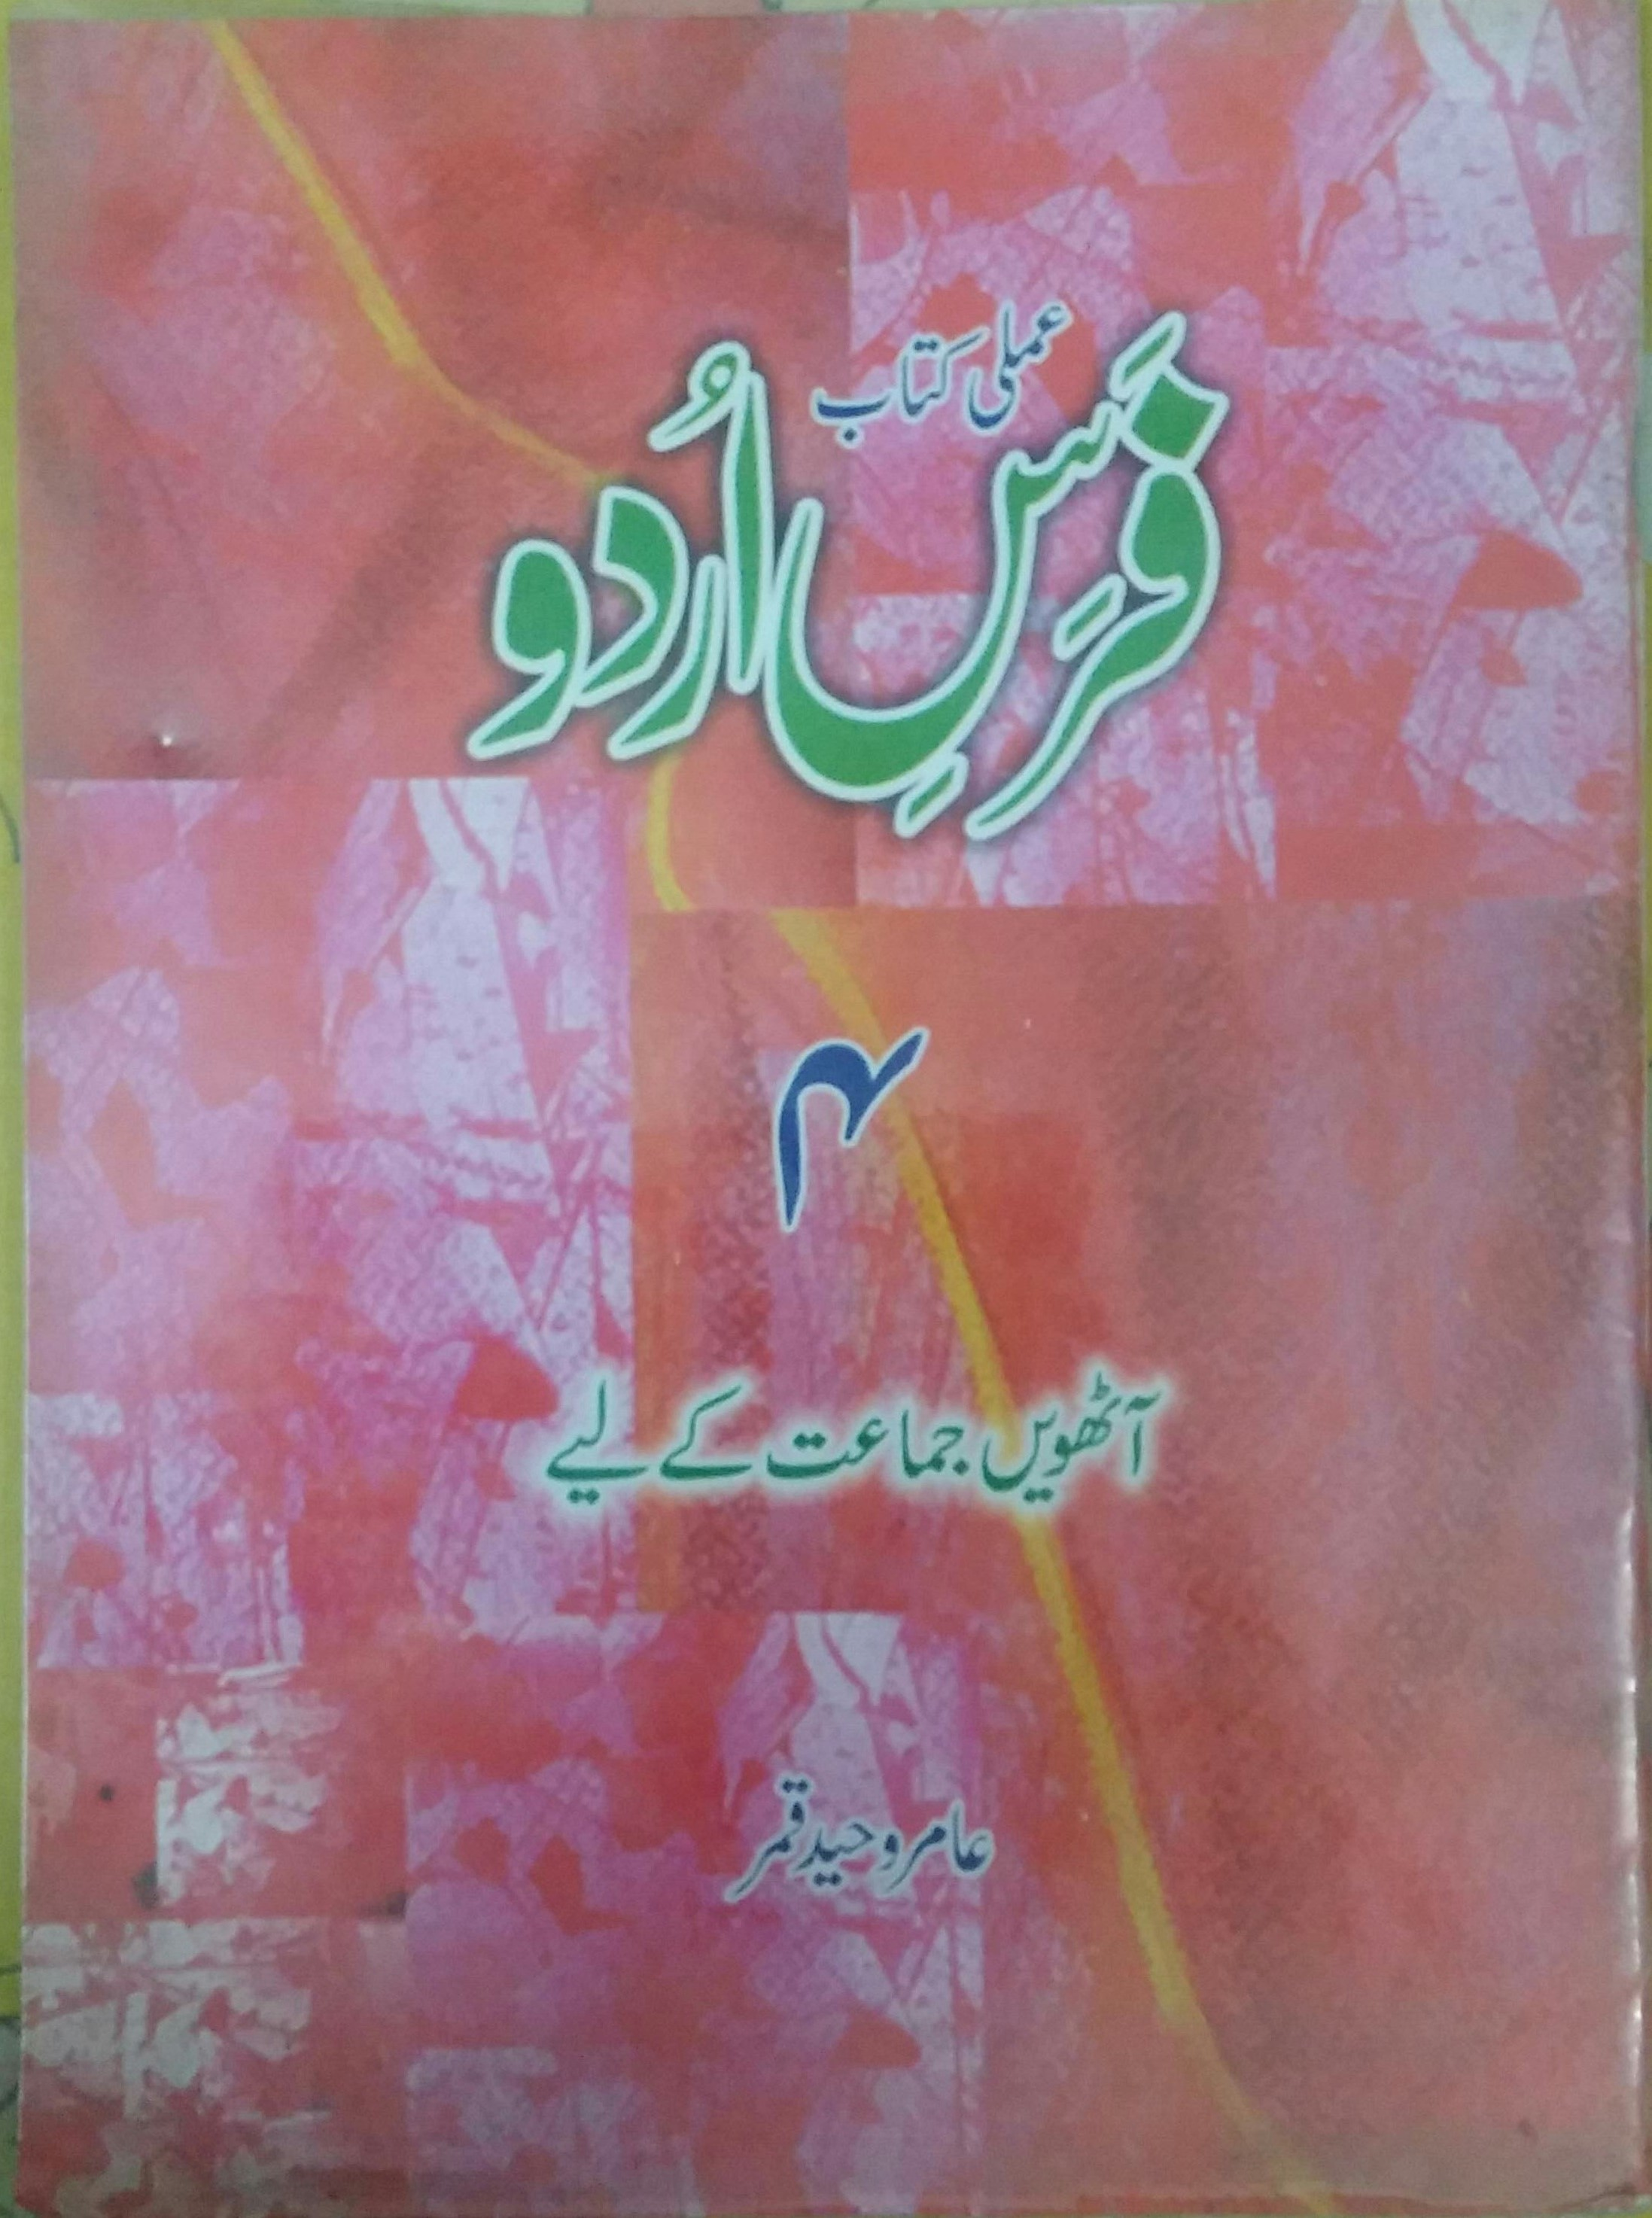 Best Textbooks (Marticulation/Inter) Books Online Buy Sell